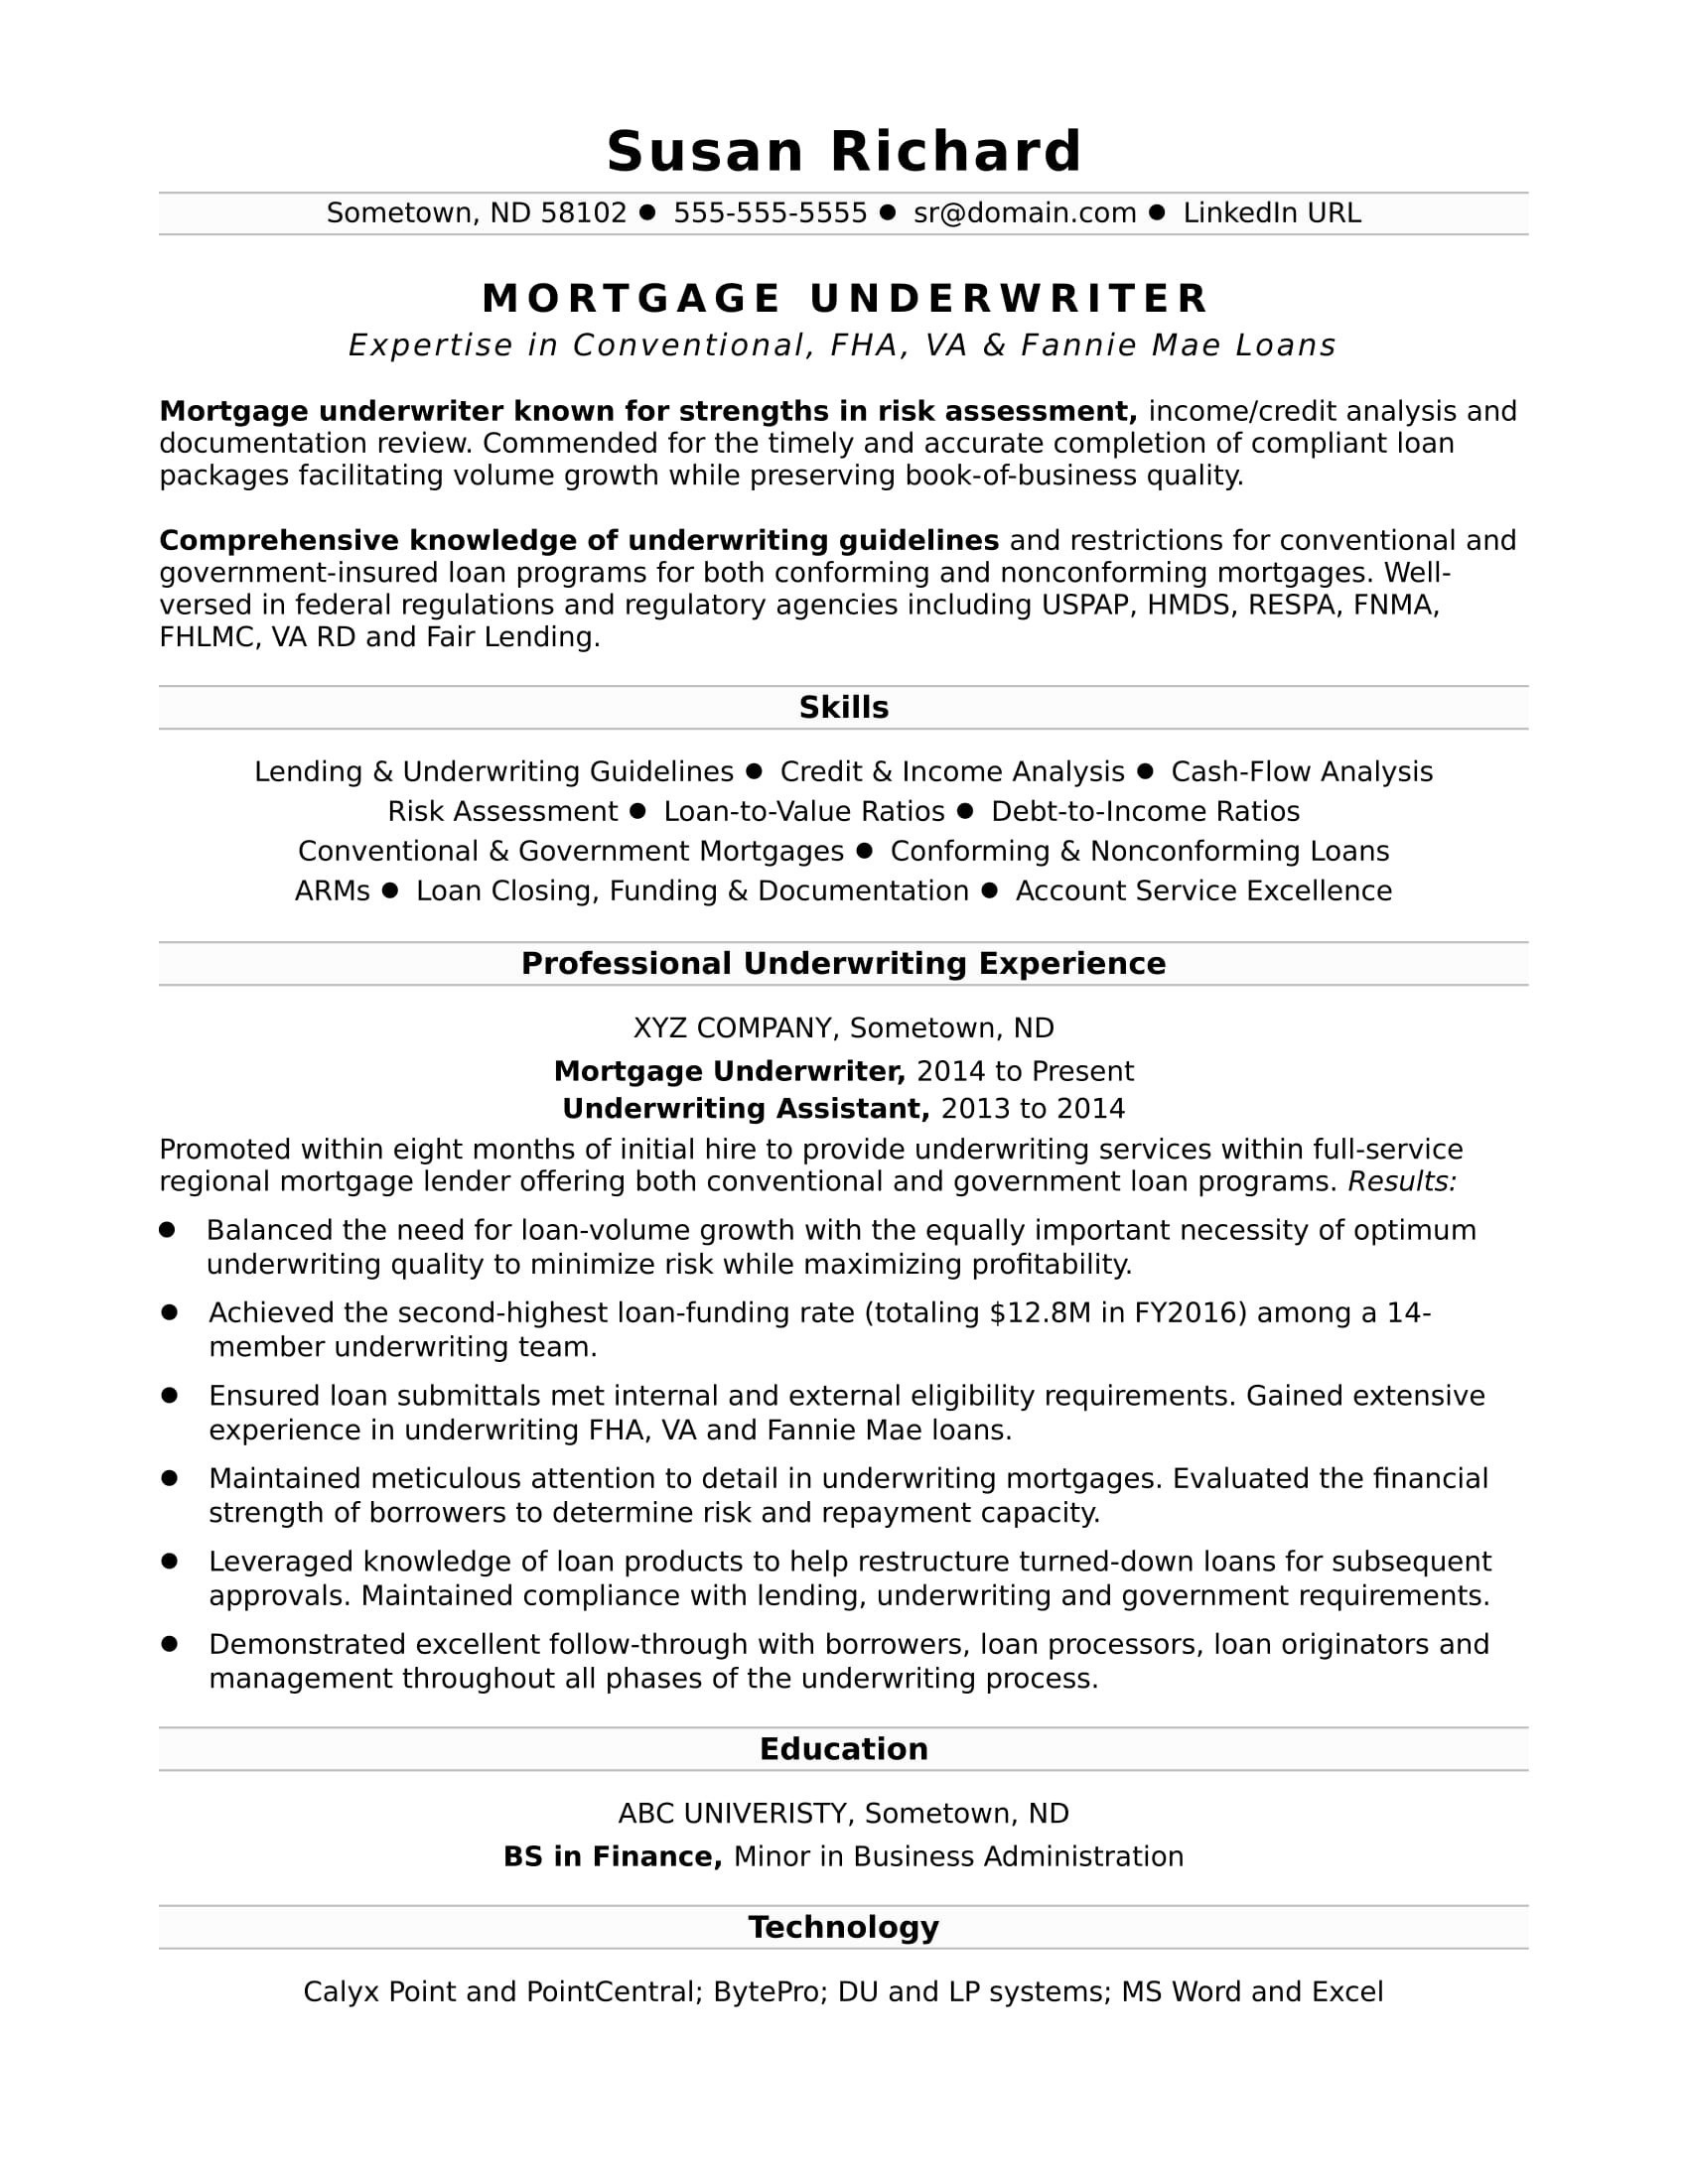 free resume cover letter template Collection-Free Resume Search In India Unique New Programmer Resume Lovely Resume Cover Letter formatted Resume 0d 9-k